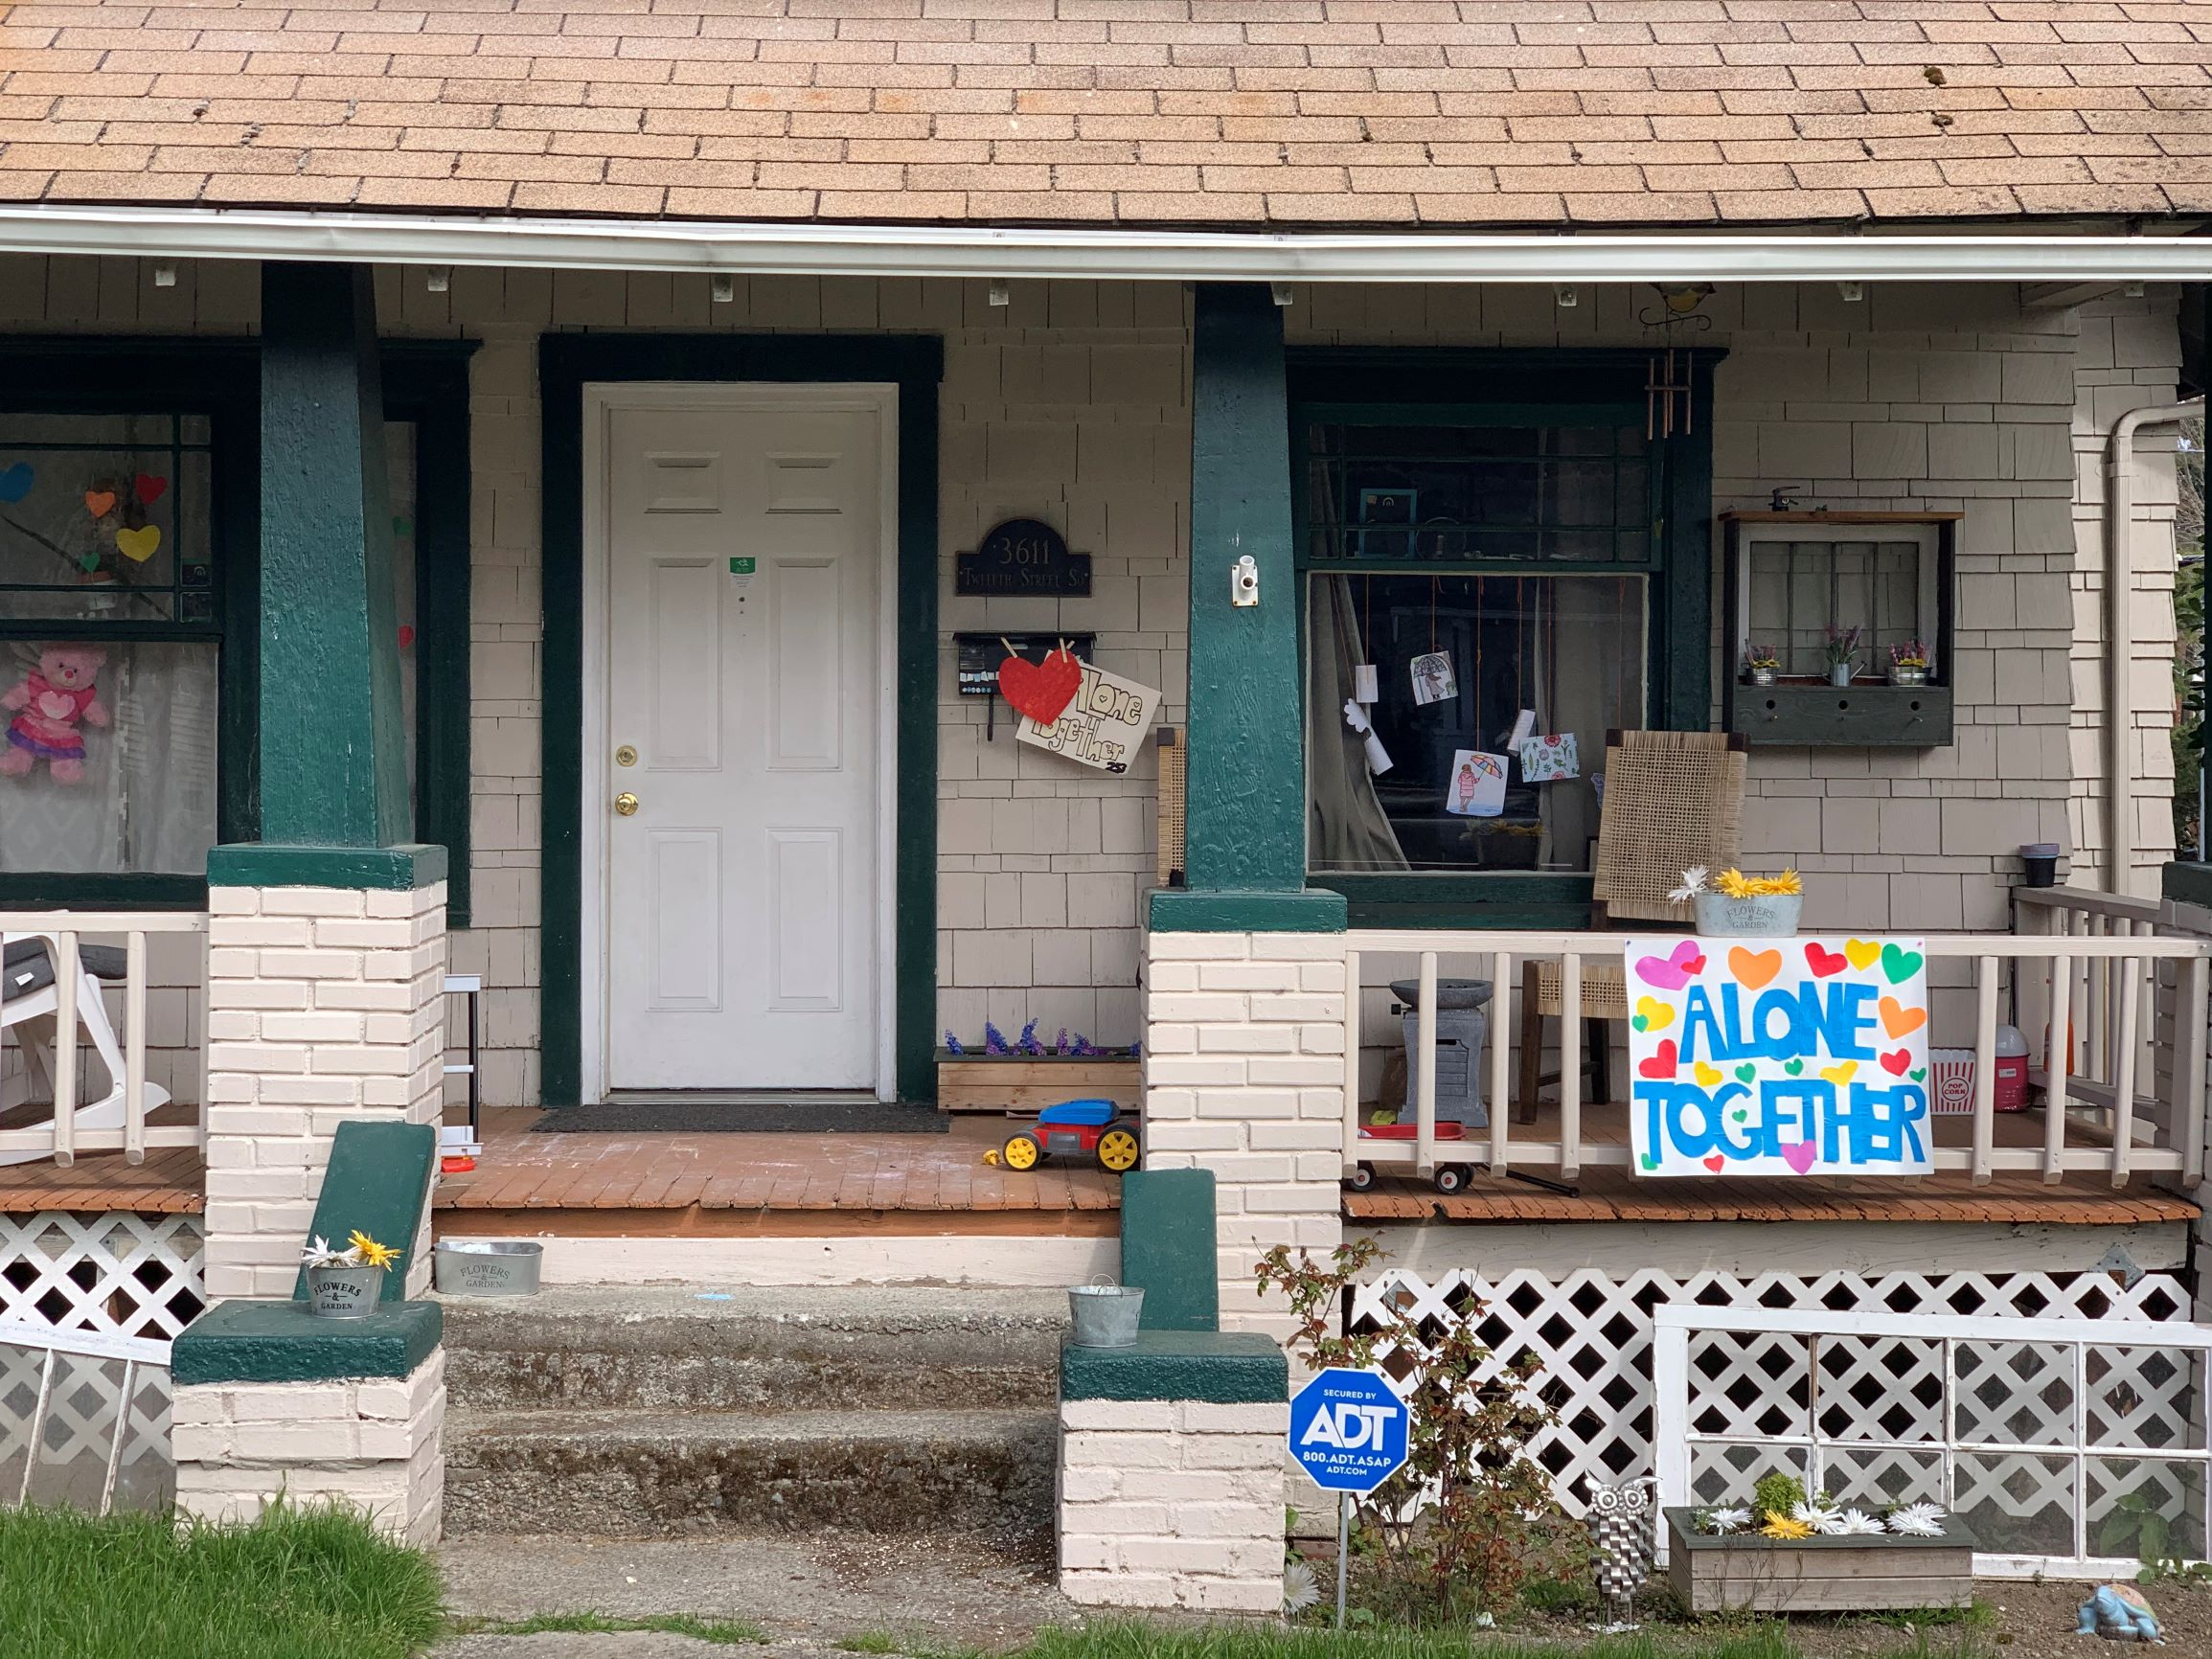 """A house in central Tacoma with several handdrawn signs including a large """"Alone Together"""""""